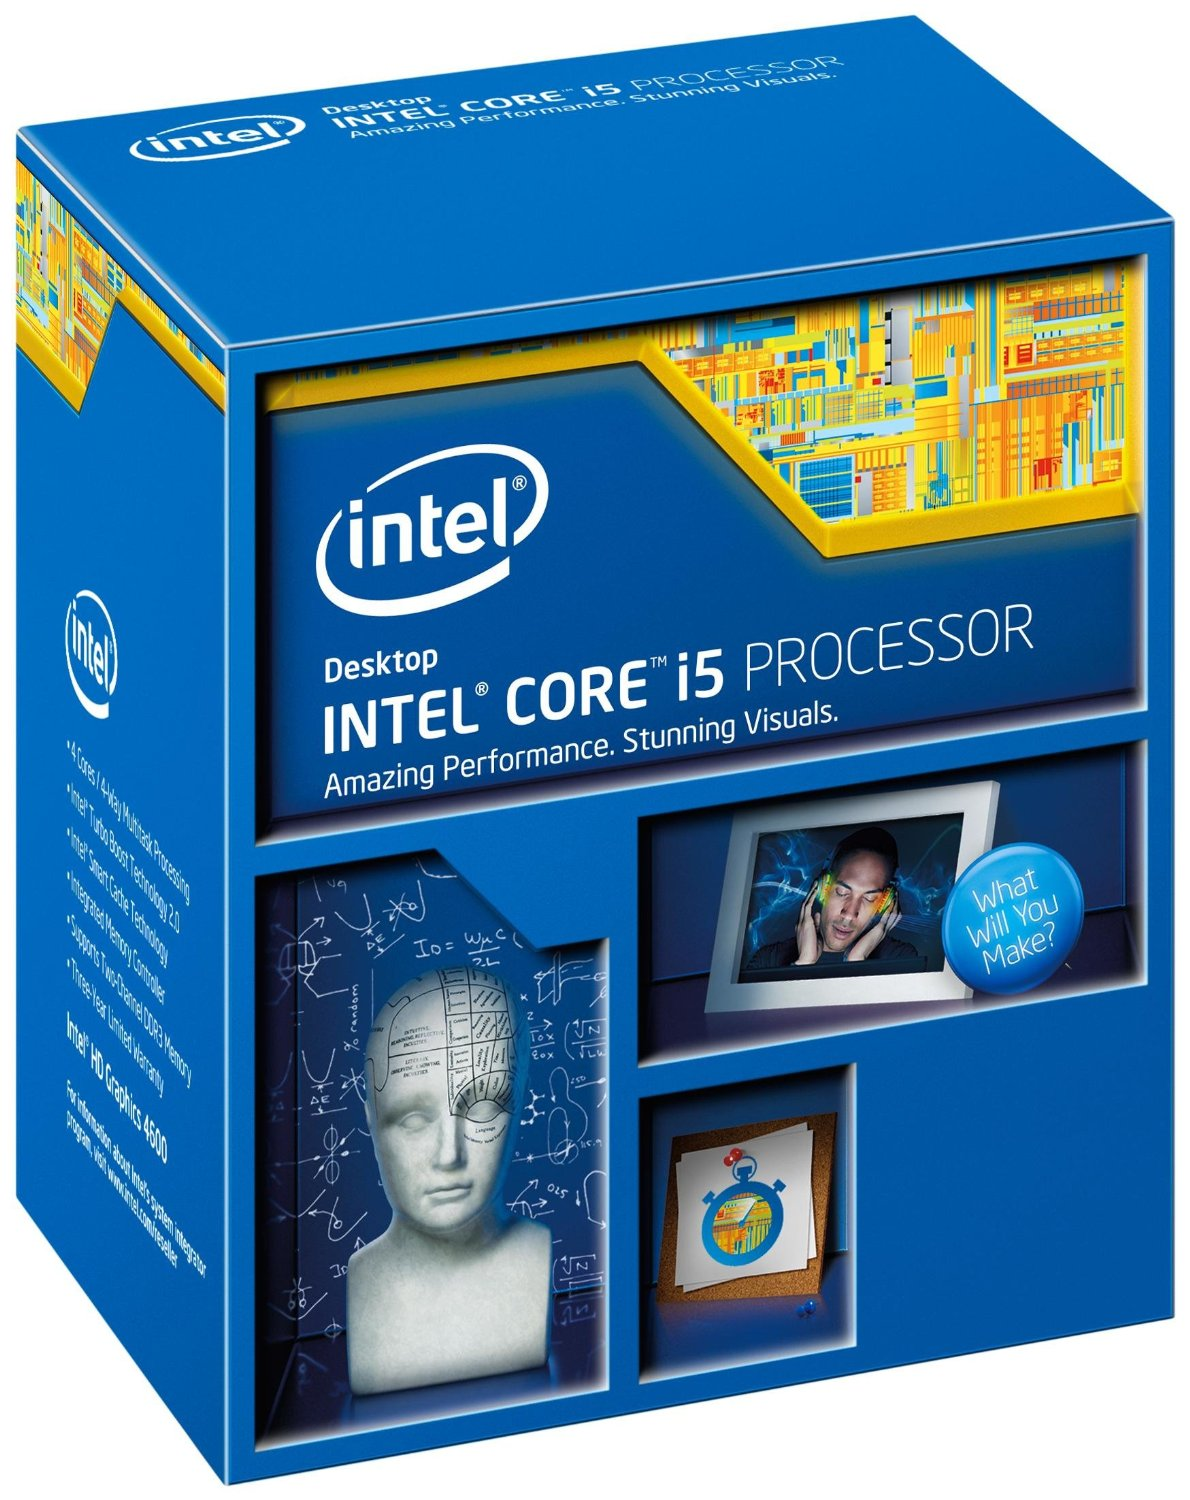 CPU Intel Core i5 4460 3.20GHz up to 3.40GHz / 6MB / HD 4600 Graphics / Socket 1150 Haswell